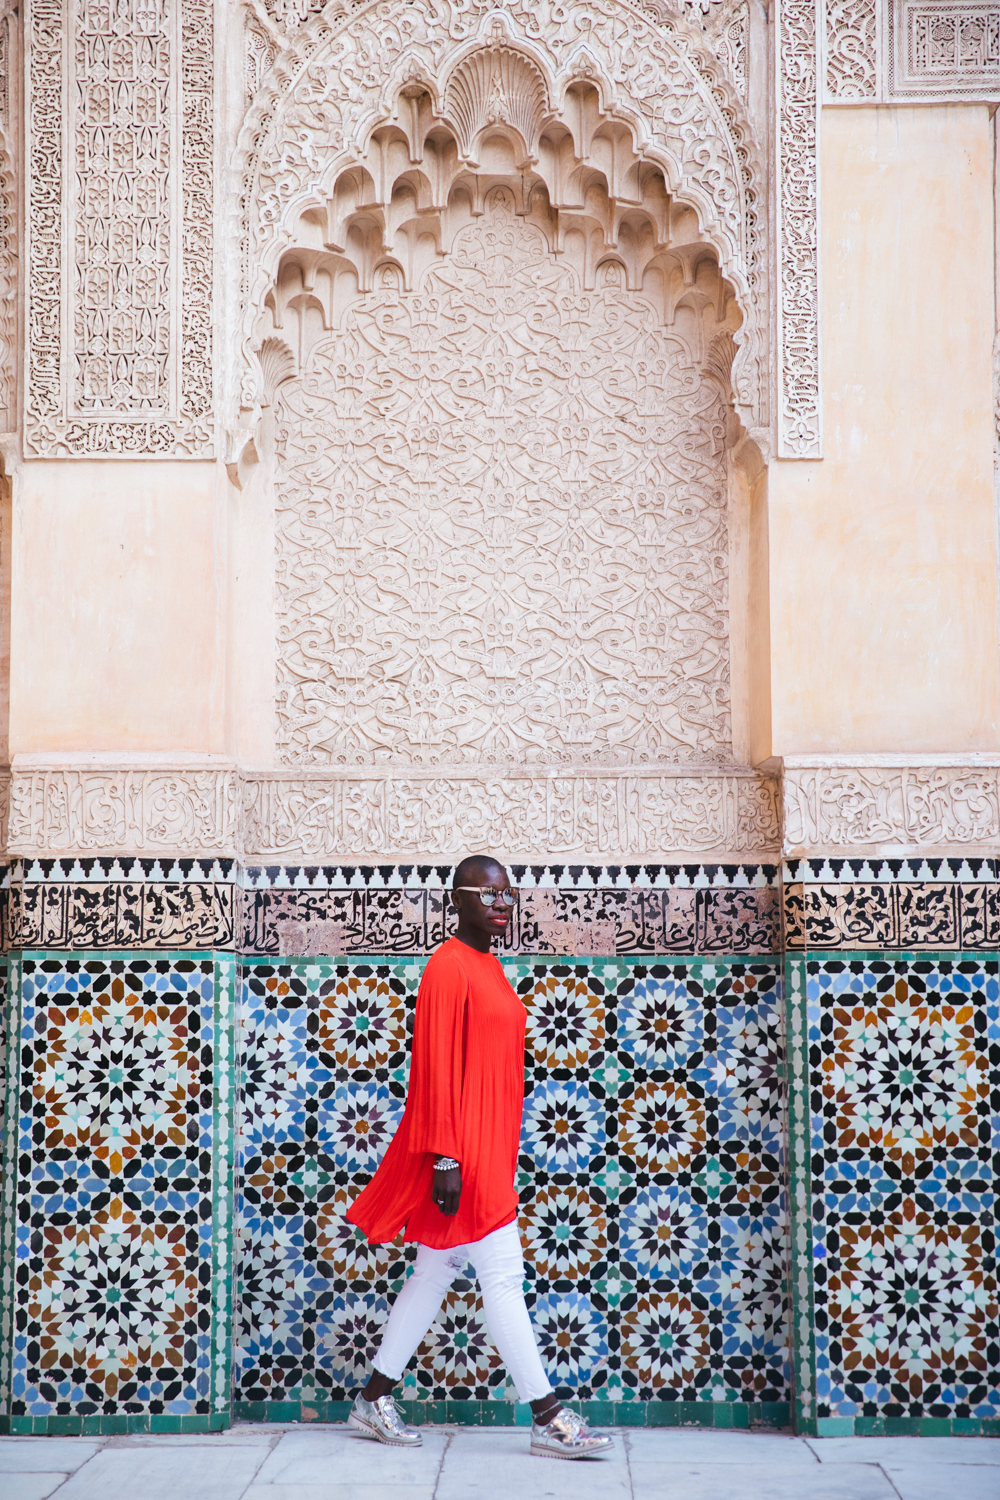 Jessica just gliding through the Ben Youssef Mosque... another tourist must-see.